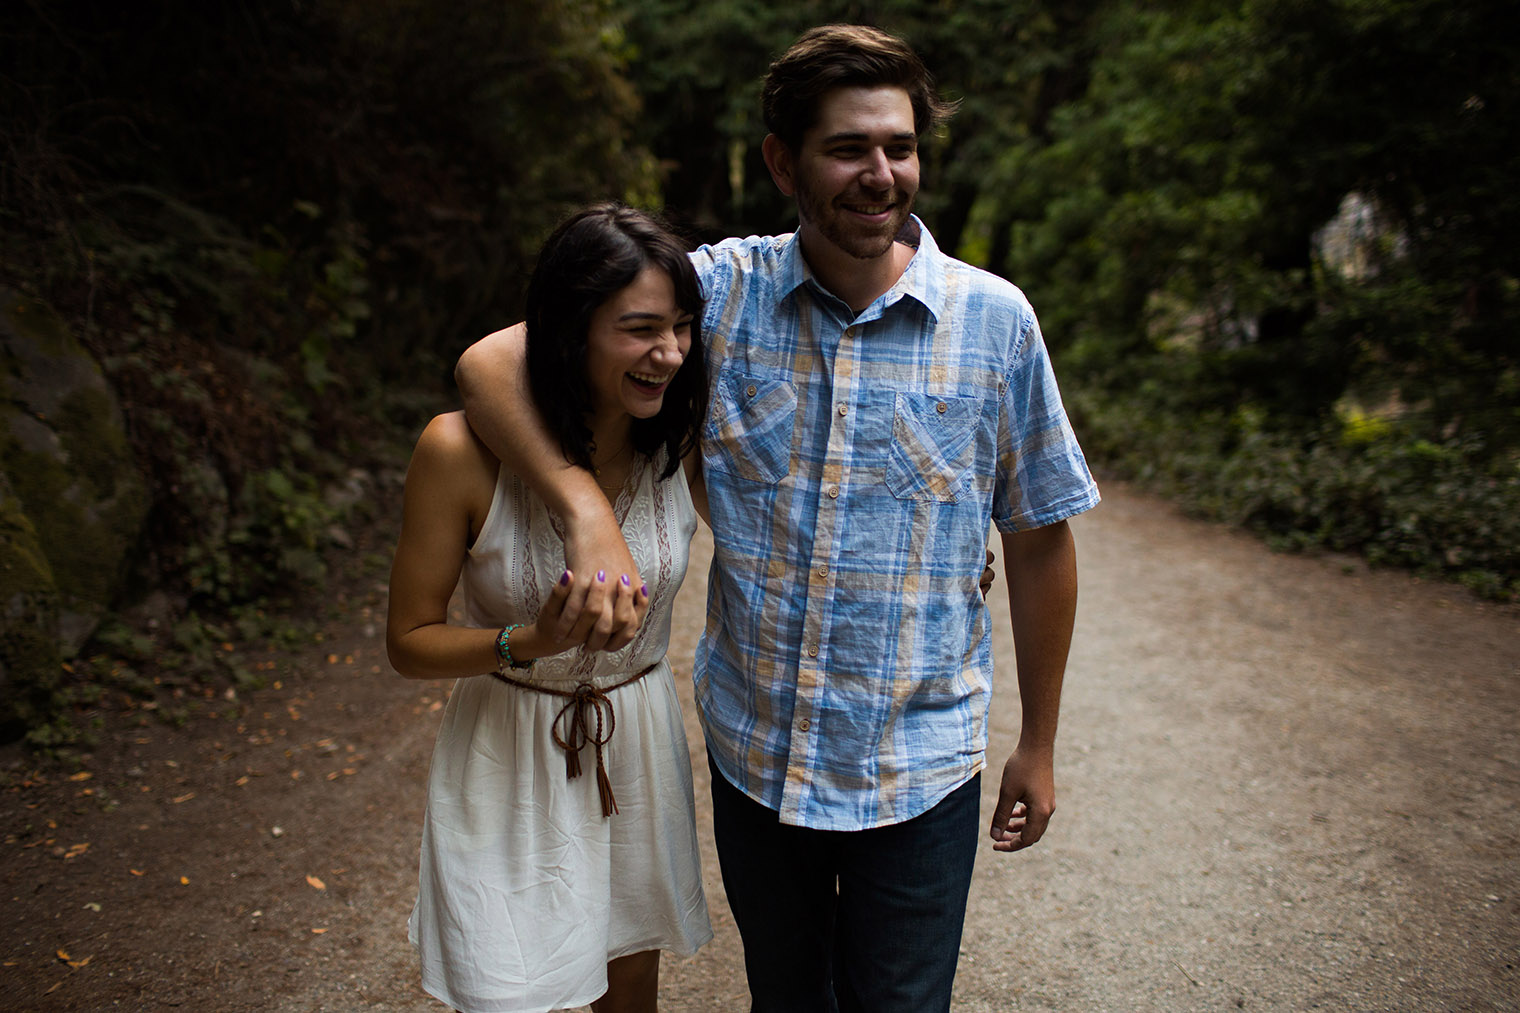 Limekiln State Park Engagement Photos